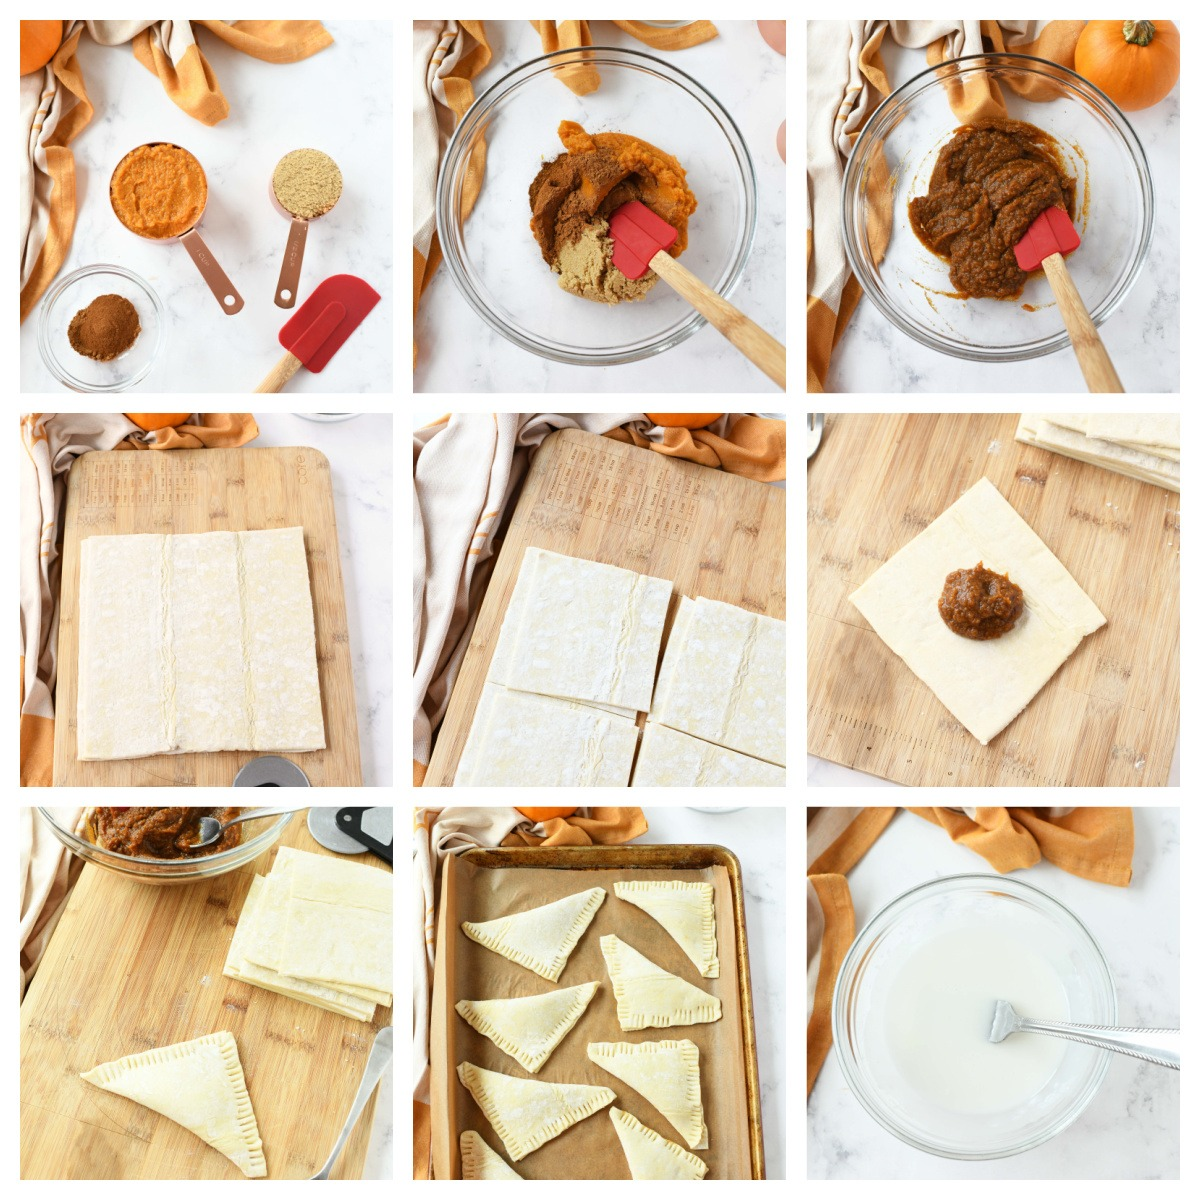 A nine image collage to show how to make pumpkin turnovers.